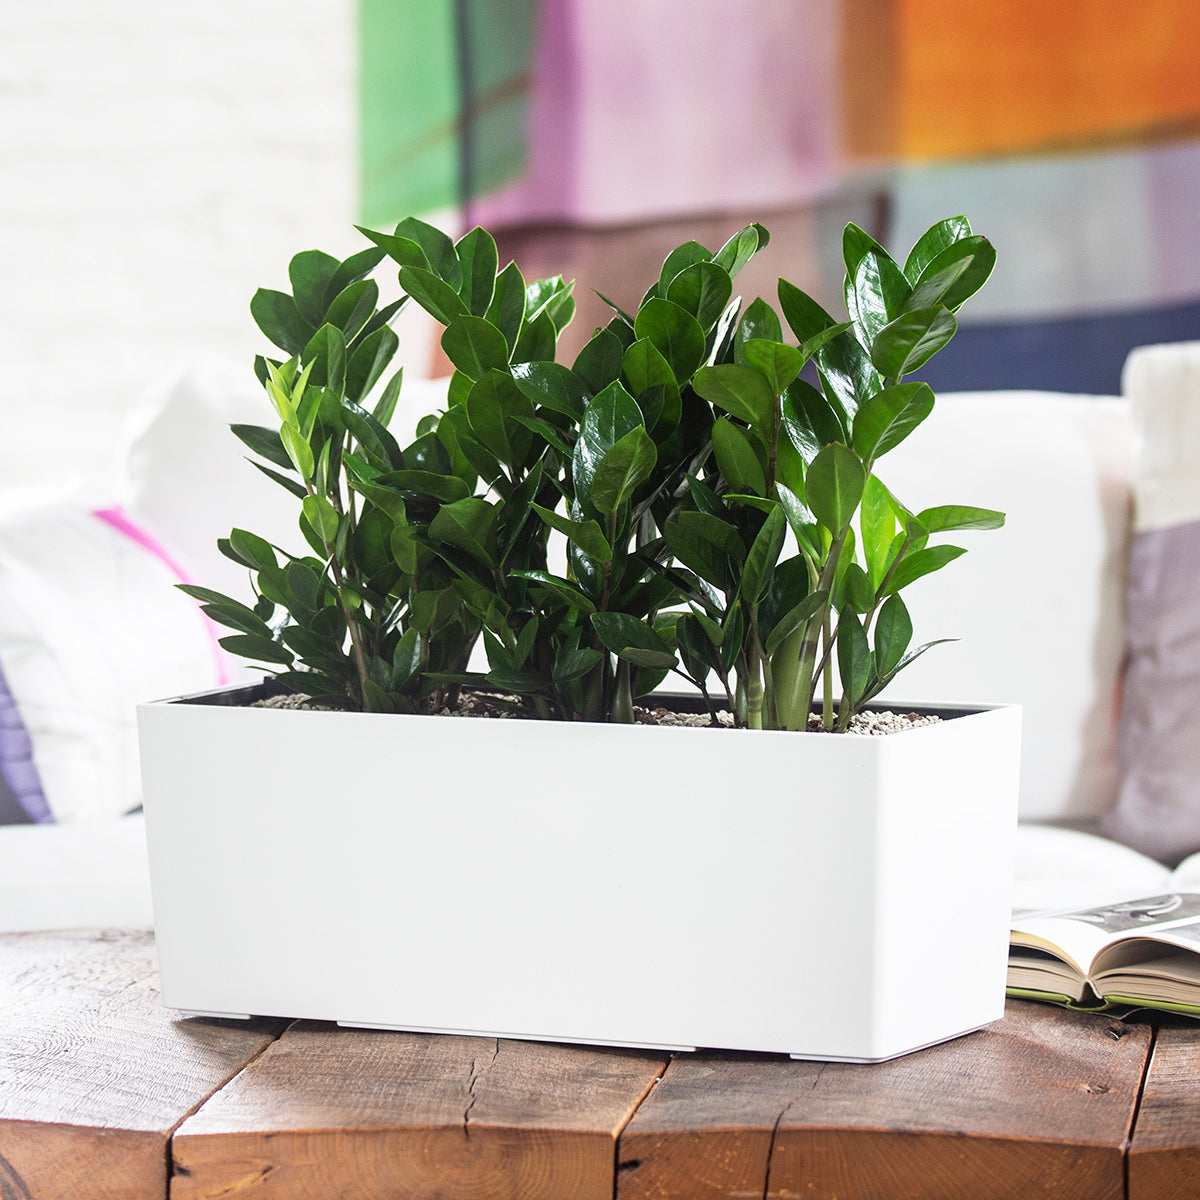 ZZ plant potted in Lechuza Balconera white self-watering planter - My City Plants